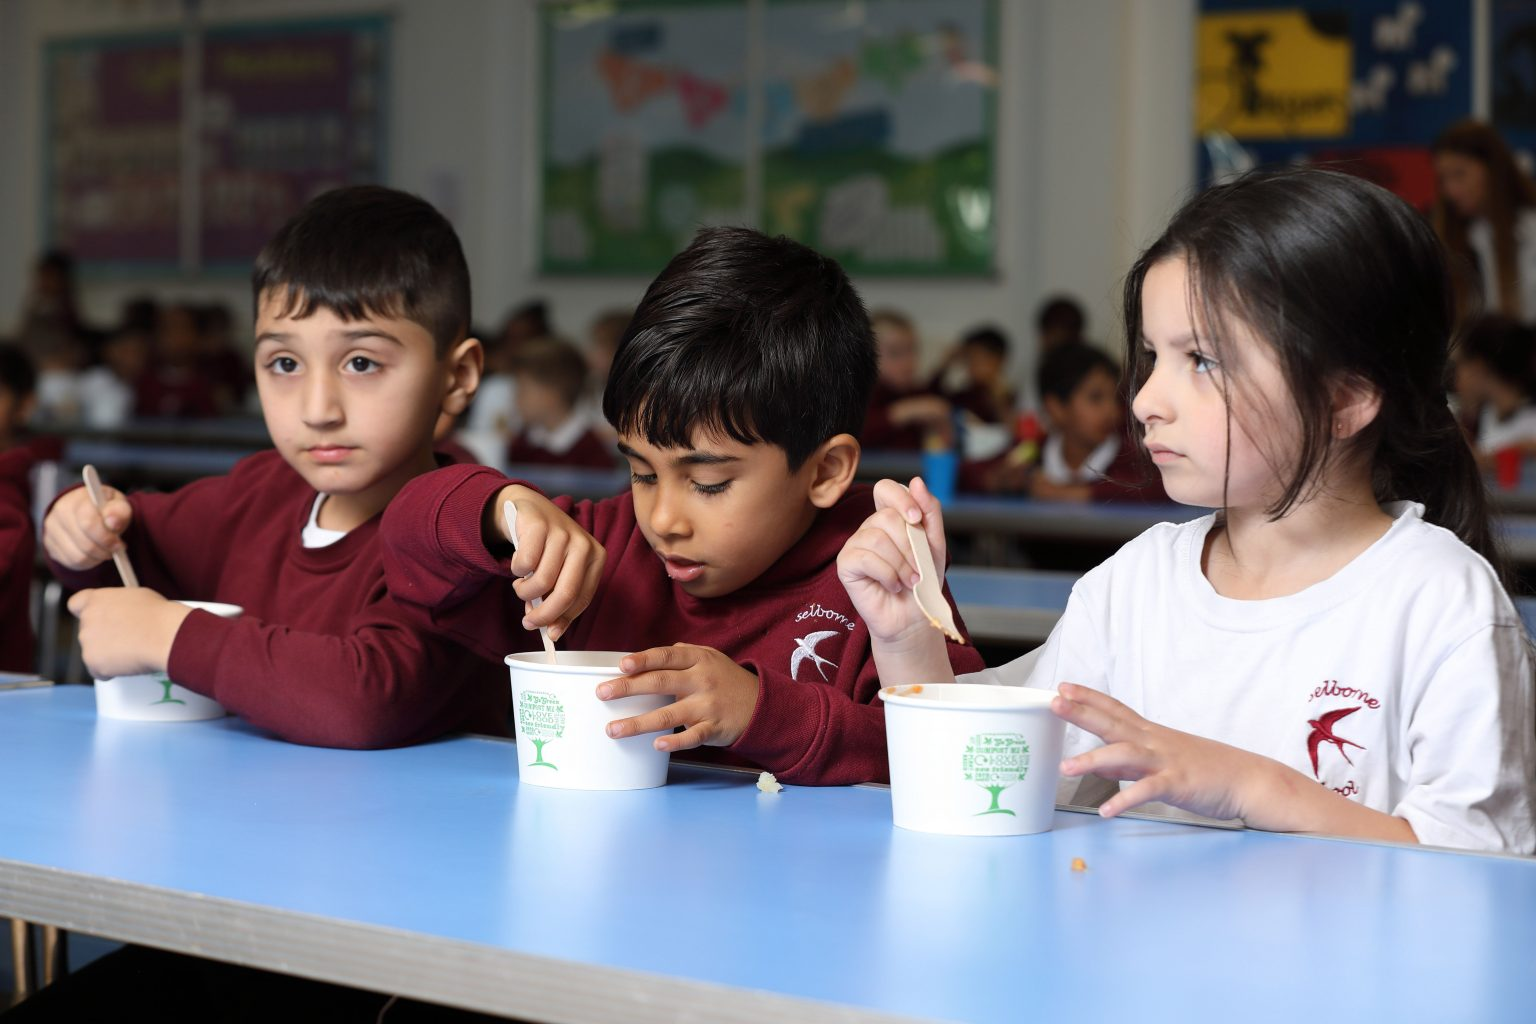 Three children eating food at a table at school